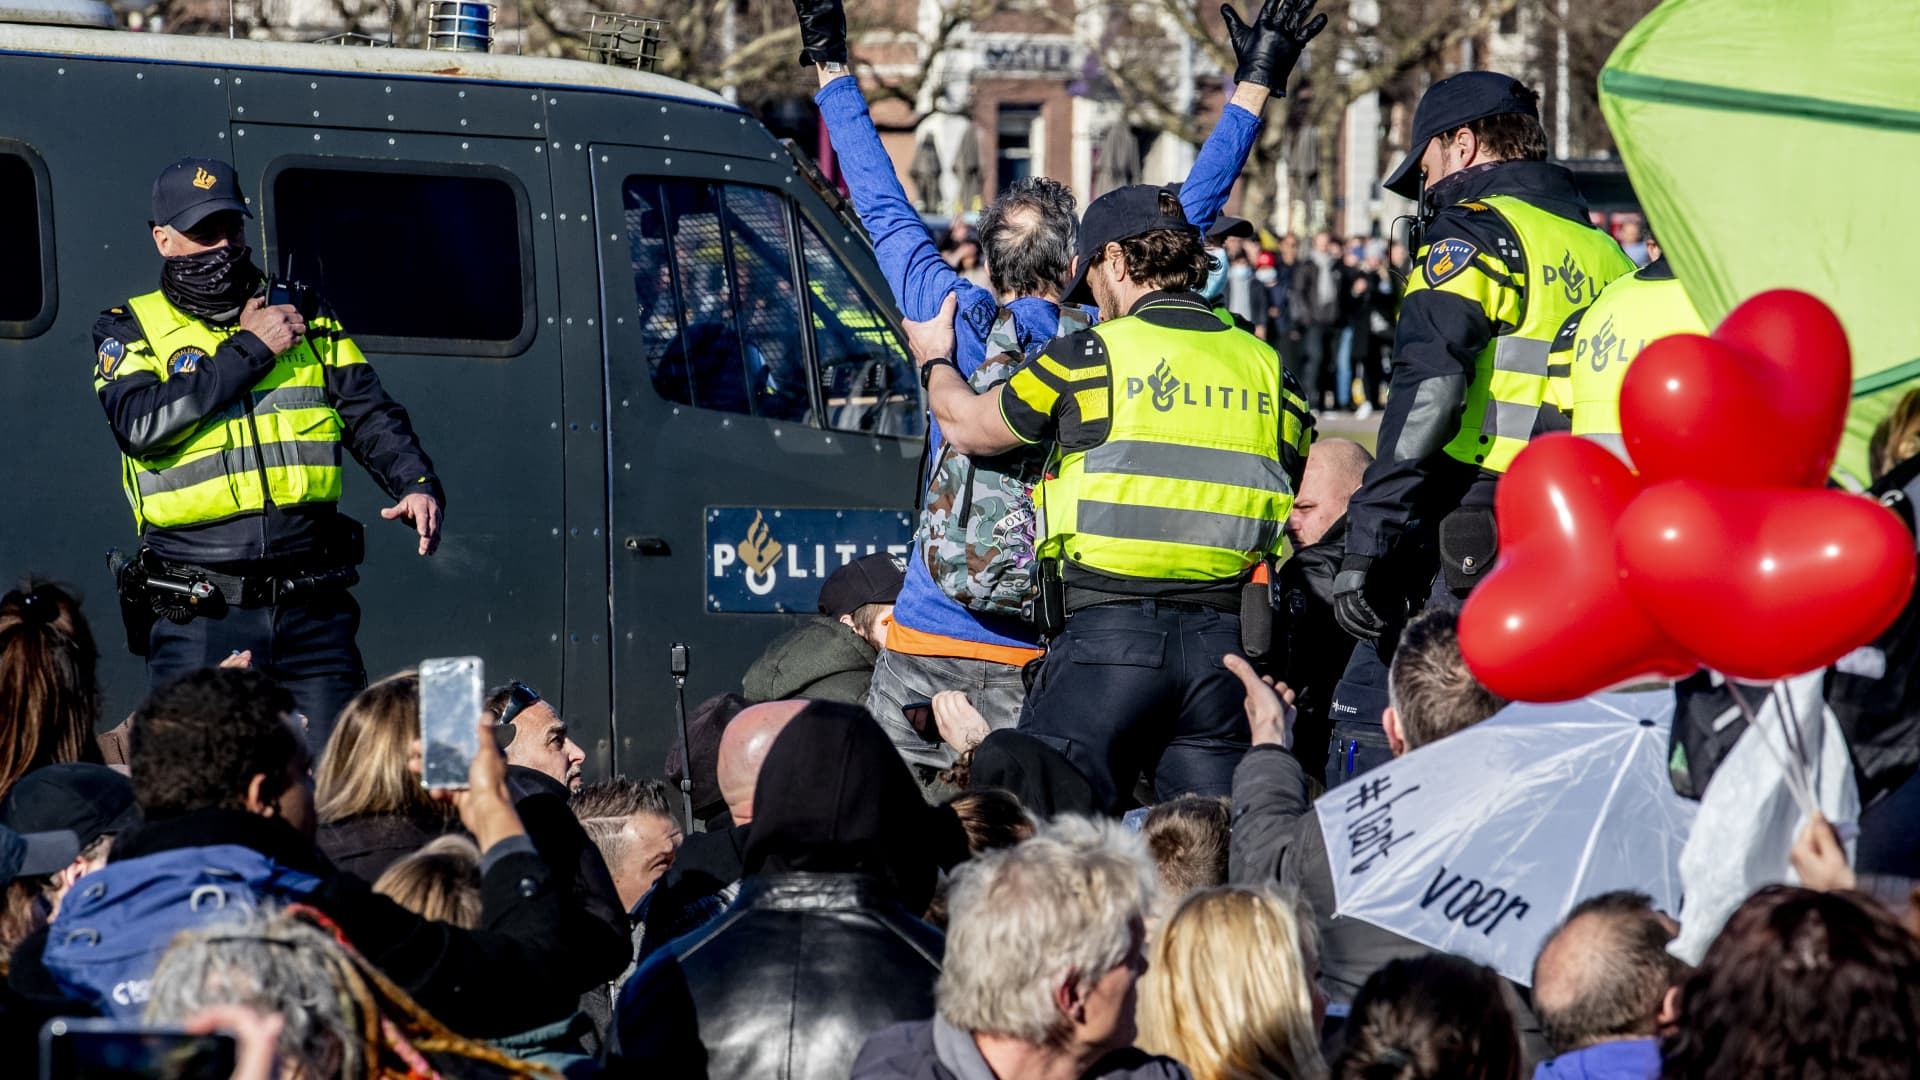 Riot police are seen clearing an anti-lockdown protest at the Museumplein on February 28, 2021 in Amsterdam, Netherlands.